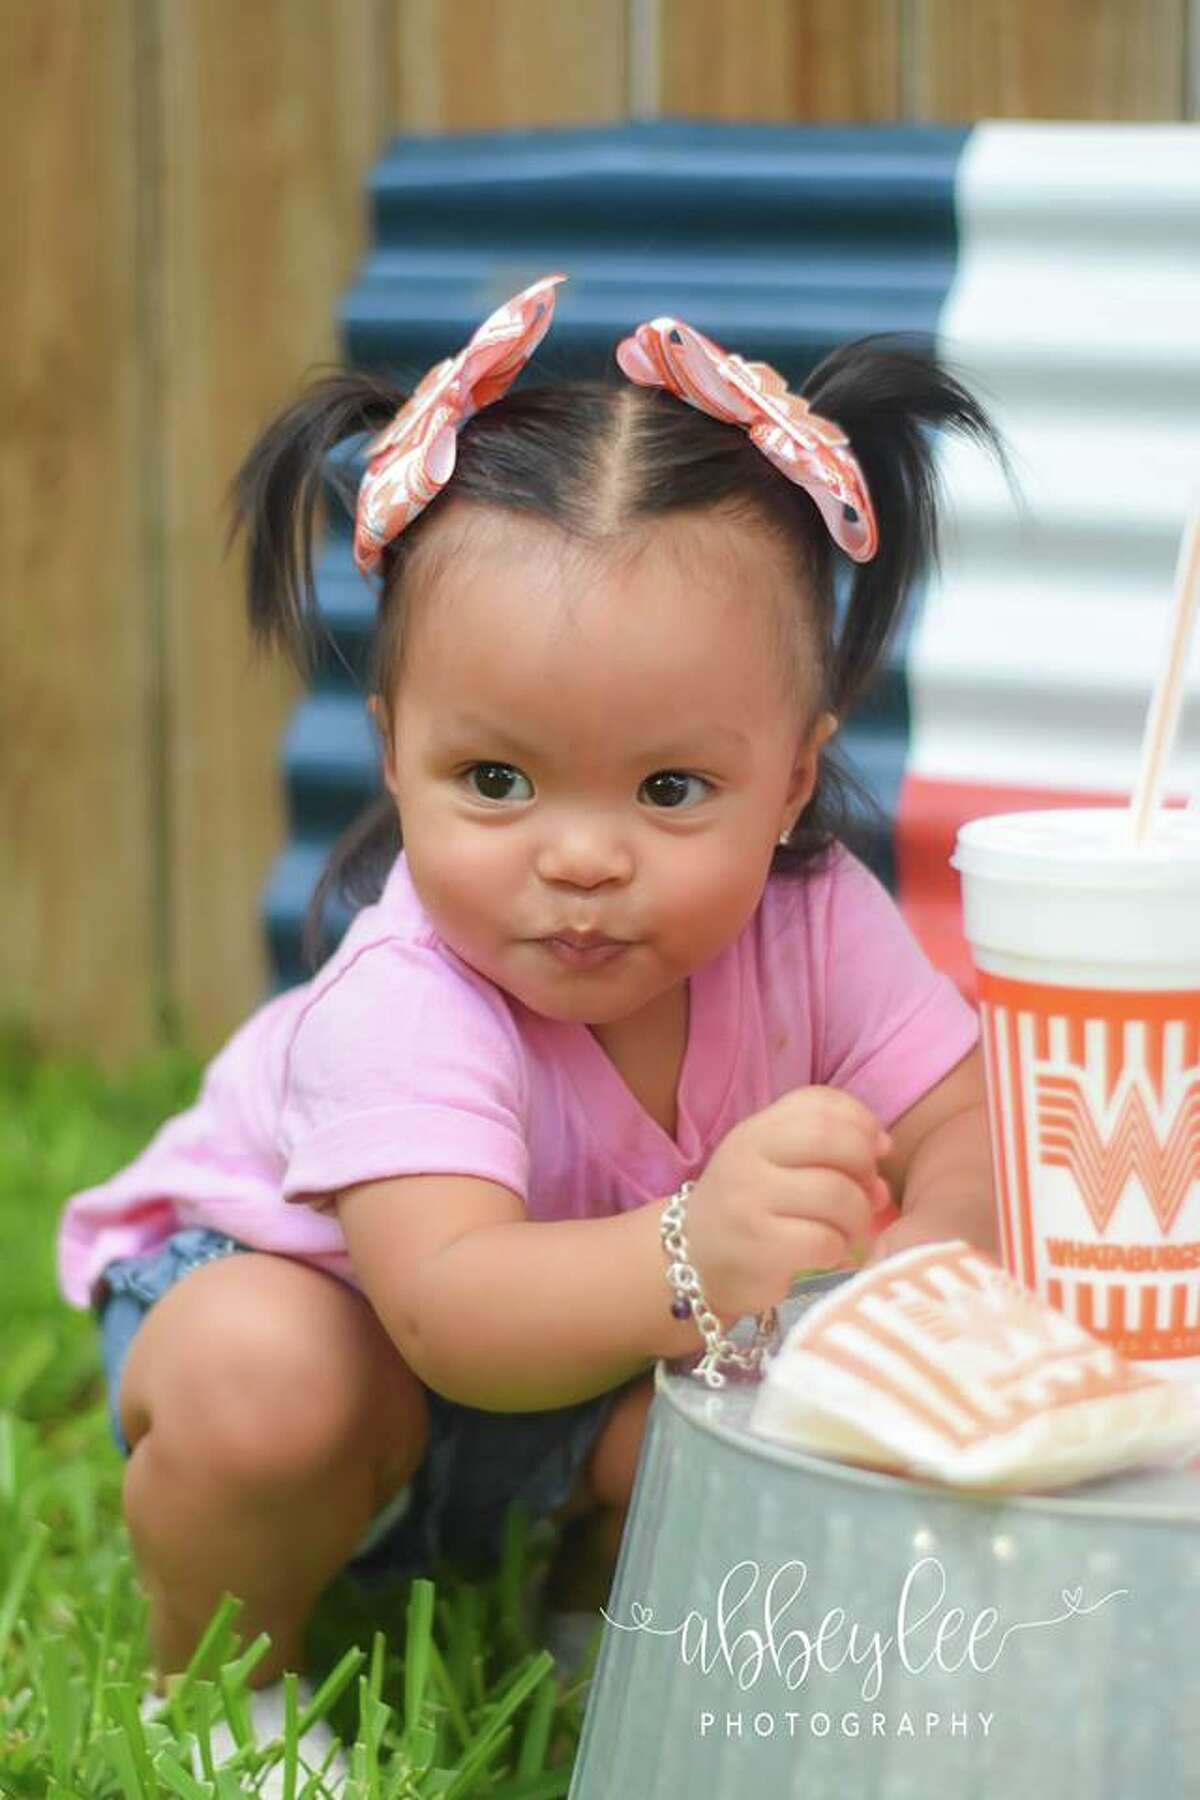 Adelyn Gonzales' love for the two Texas institutions were on full display in a series of H-E-B- and Whataburger-themed photos taken by her aunt, Abbey Lopez, of AbbeyLee Photography. Though the infancy of Adelyn's infatuation coincided with her infancy, her allegiance to the two brands is full grown.